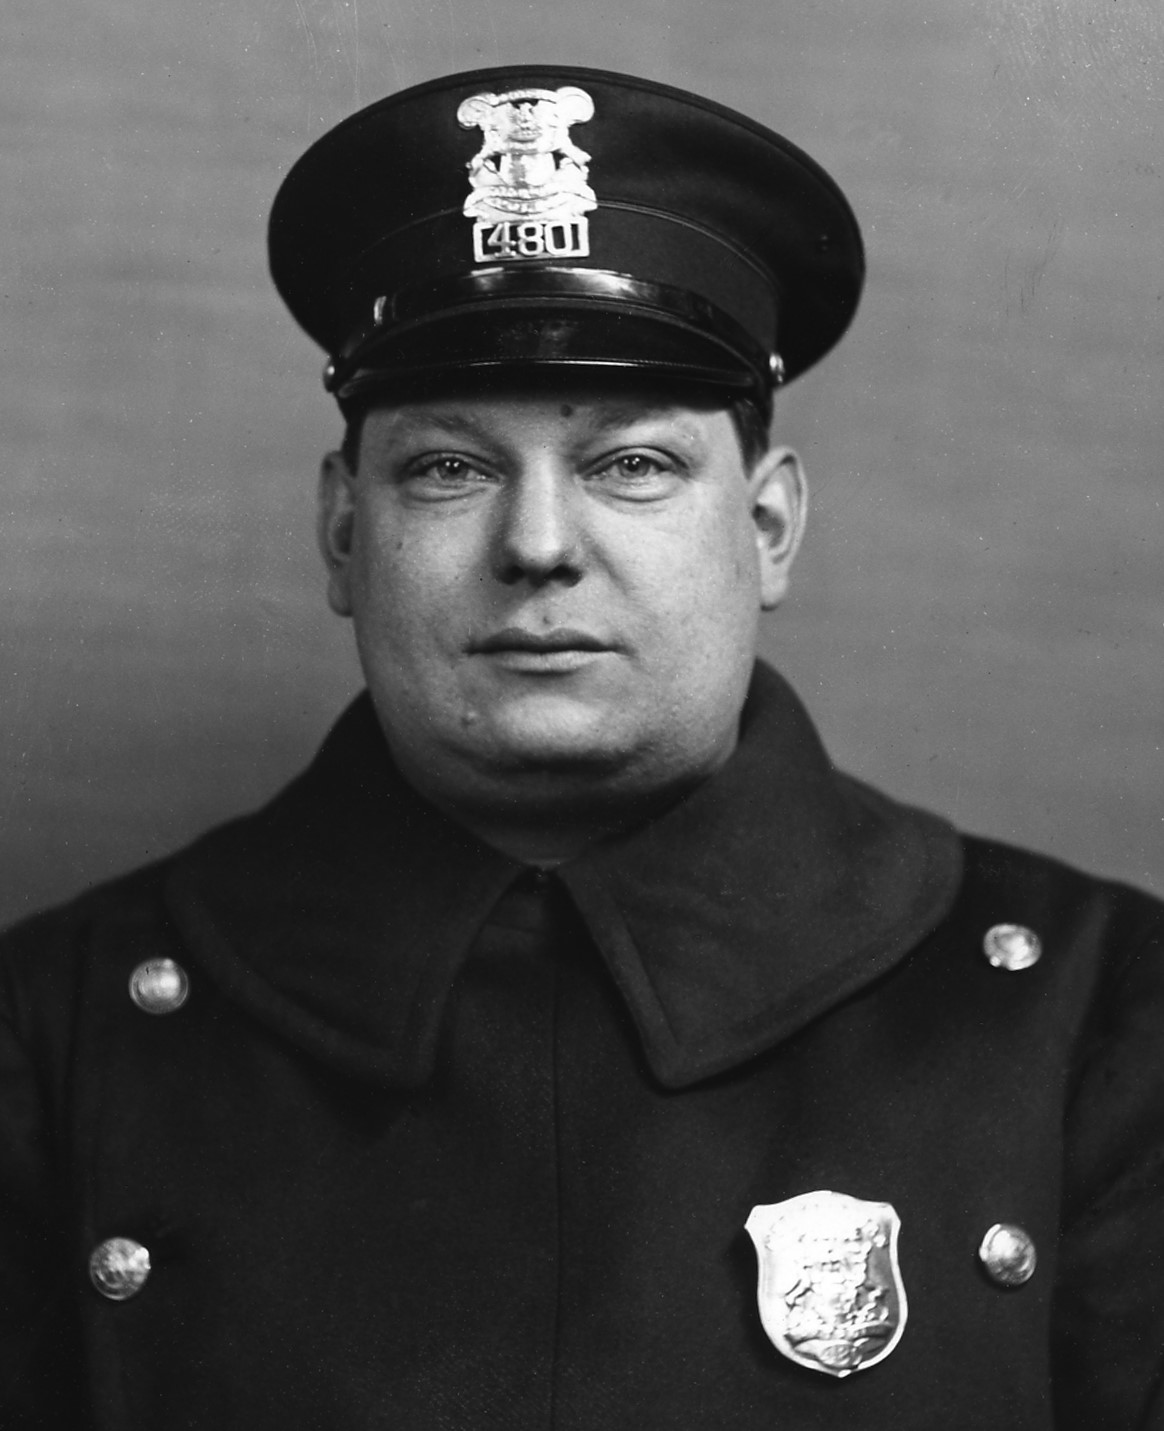 Police Officer William F. Frahm | Detroit Police Department, Michigan